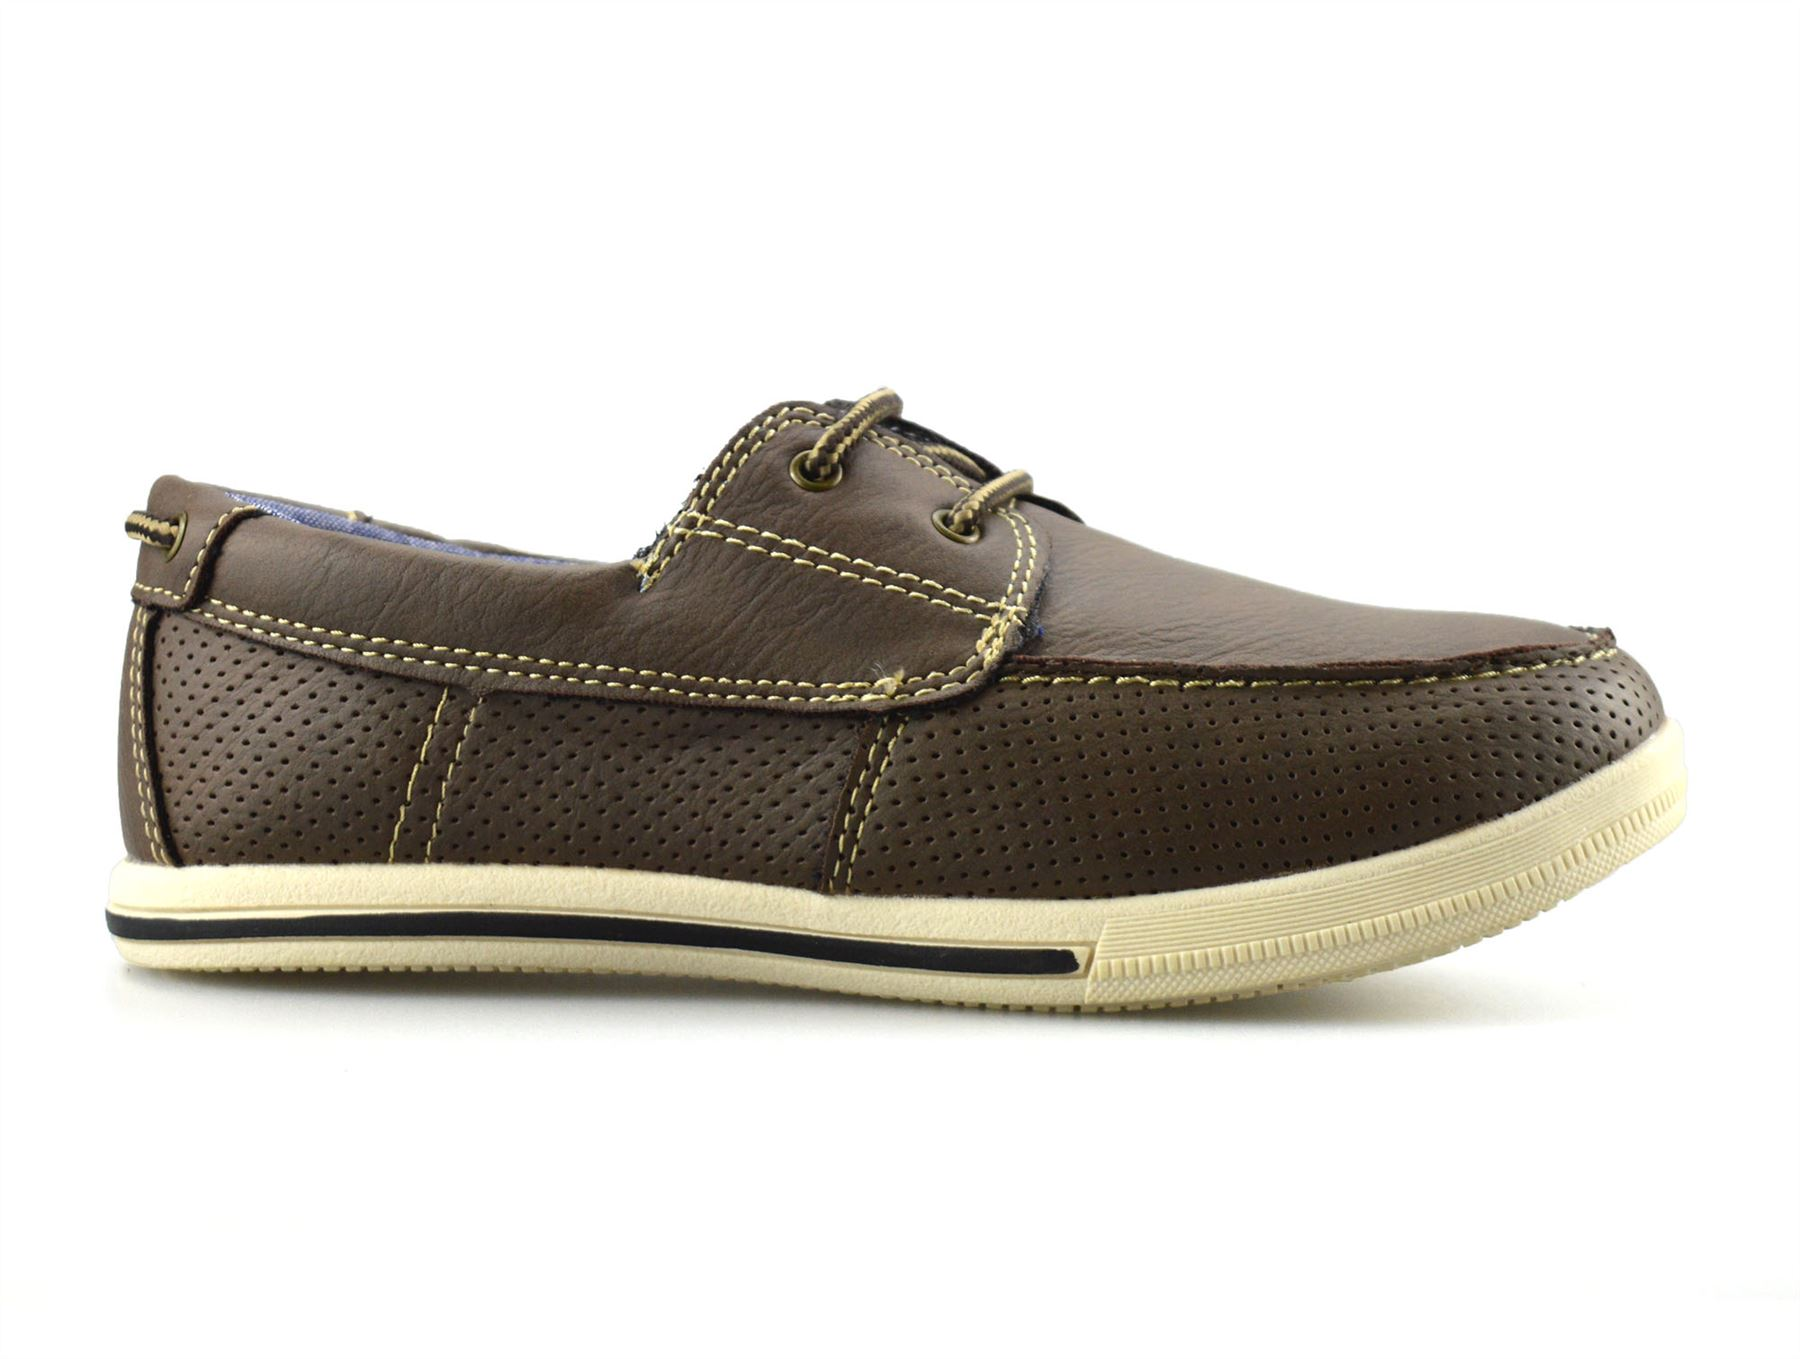 Boys-Kids-Casual-Summer-Lace-Up-Smart-Walking-School-Trainers-Boat-Shoes-Size thumbnail 8